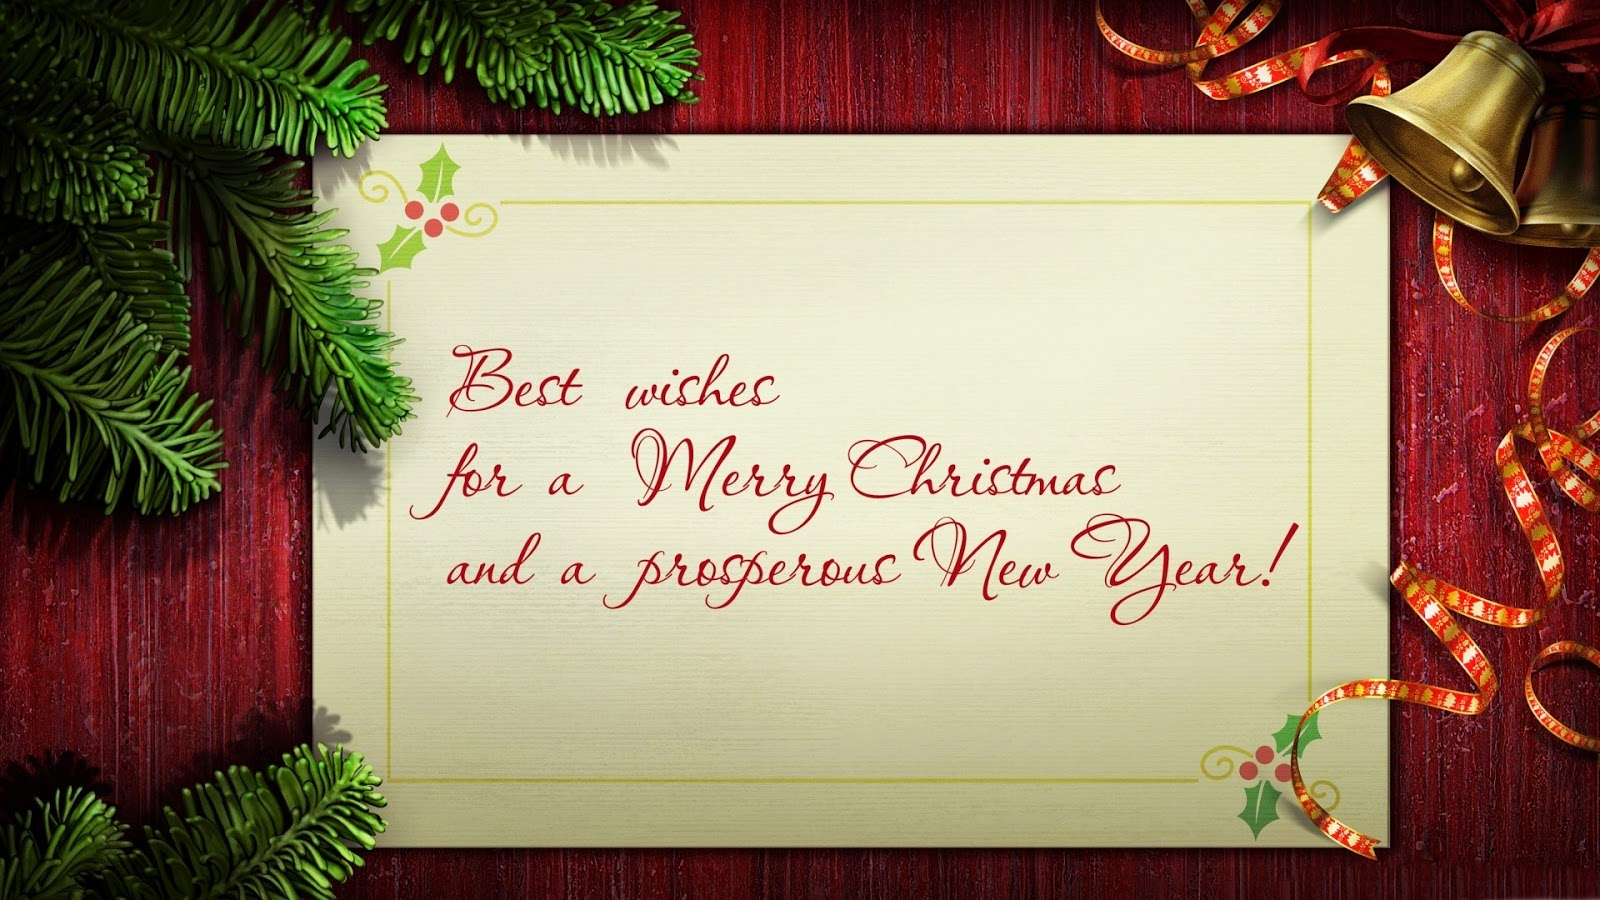 best-wishes-for-a-merry-Christmas-and-a-prosperous-new-year-greeting-image.jpg